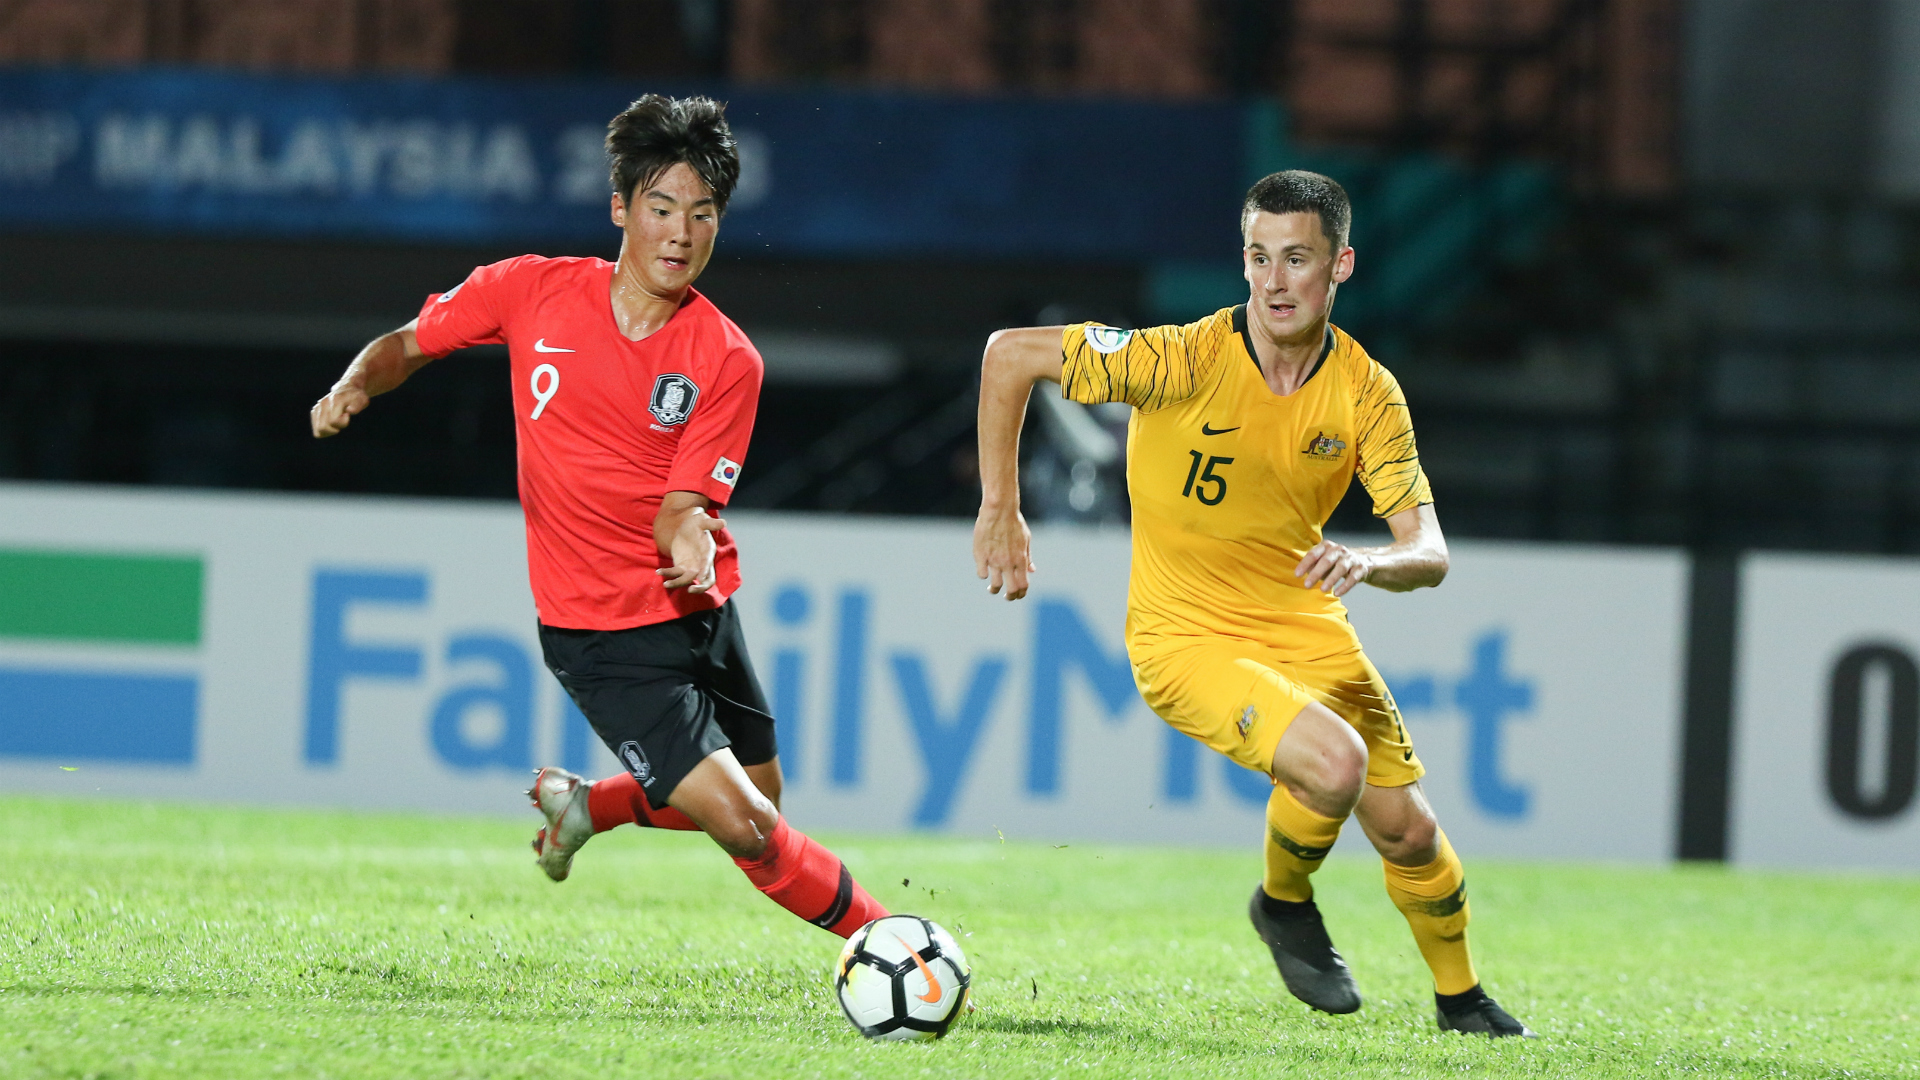 Indian U16 Football Team: Know Your Rivals - South Korea